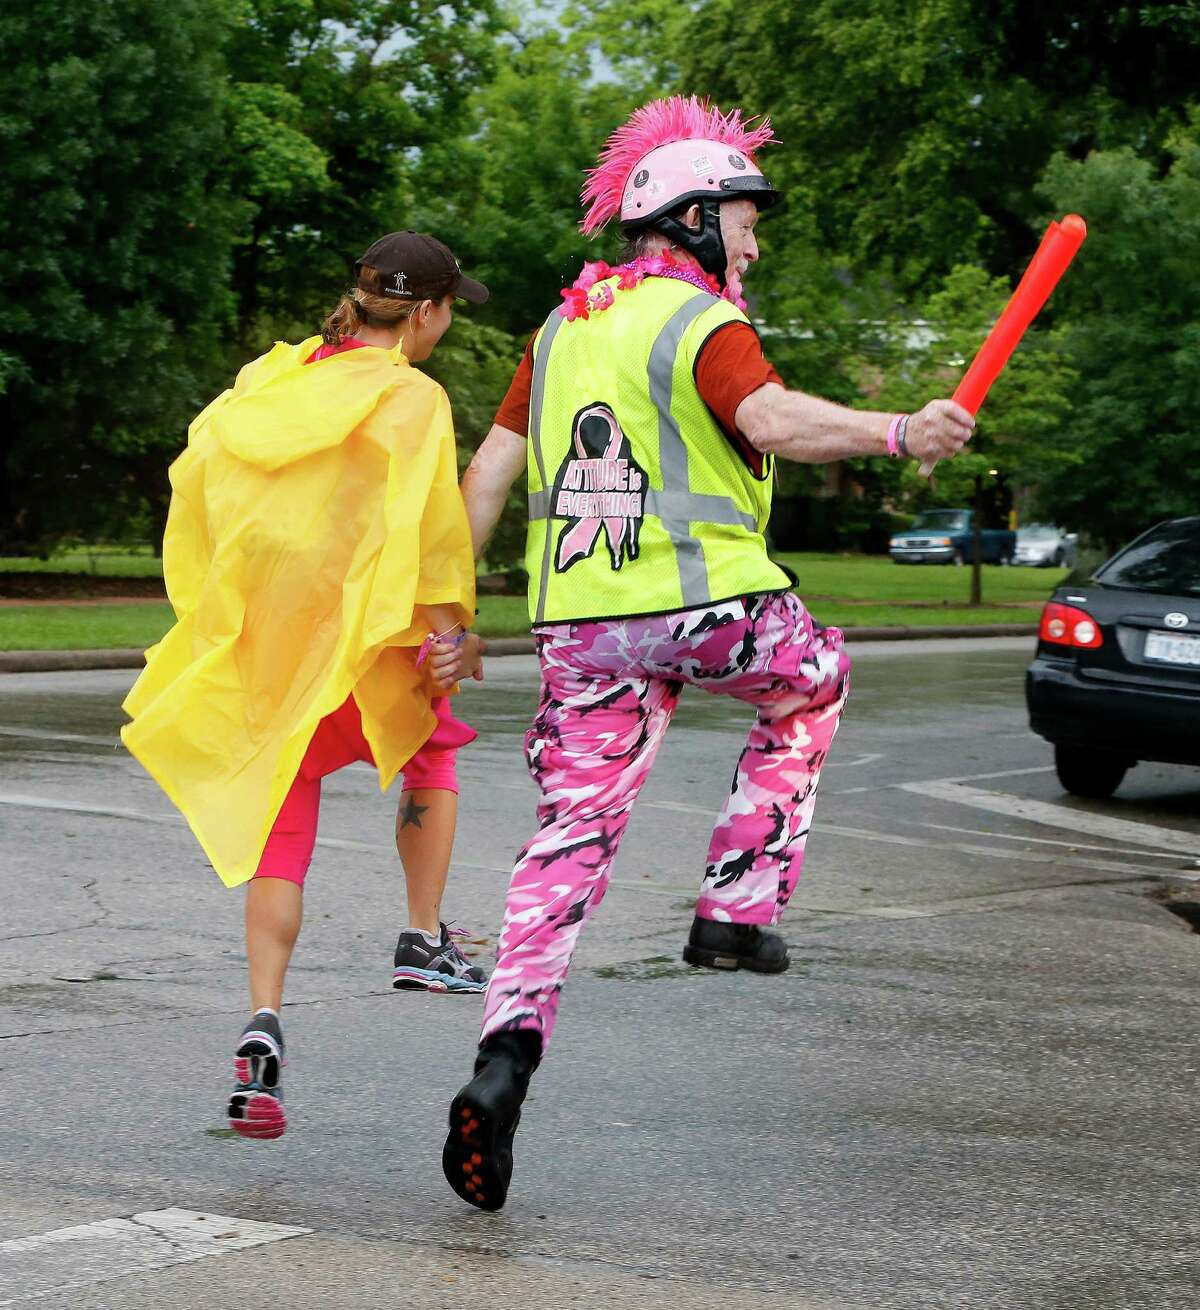 Ralph Walters, a motorcycle safety crew member, skips across an intersection with a walker during the AVON 39 The Walk to End Breast Cancer.